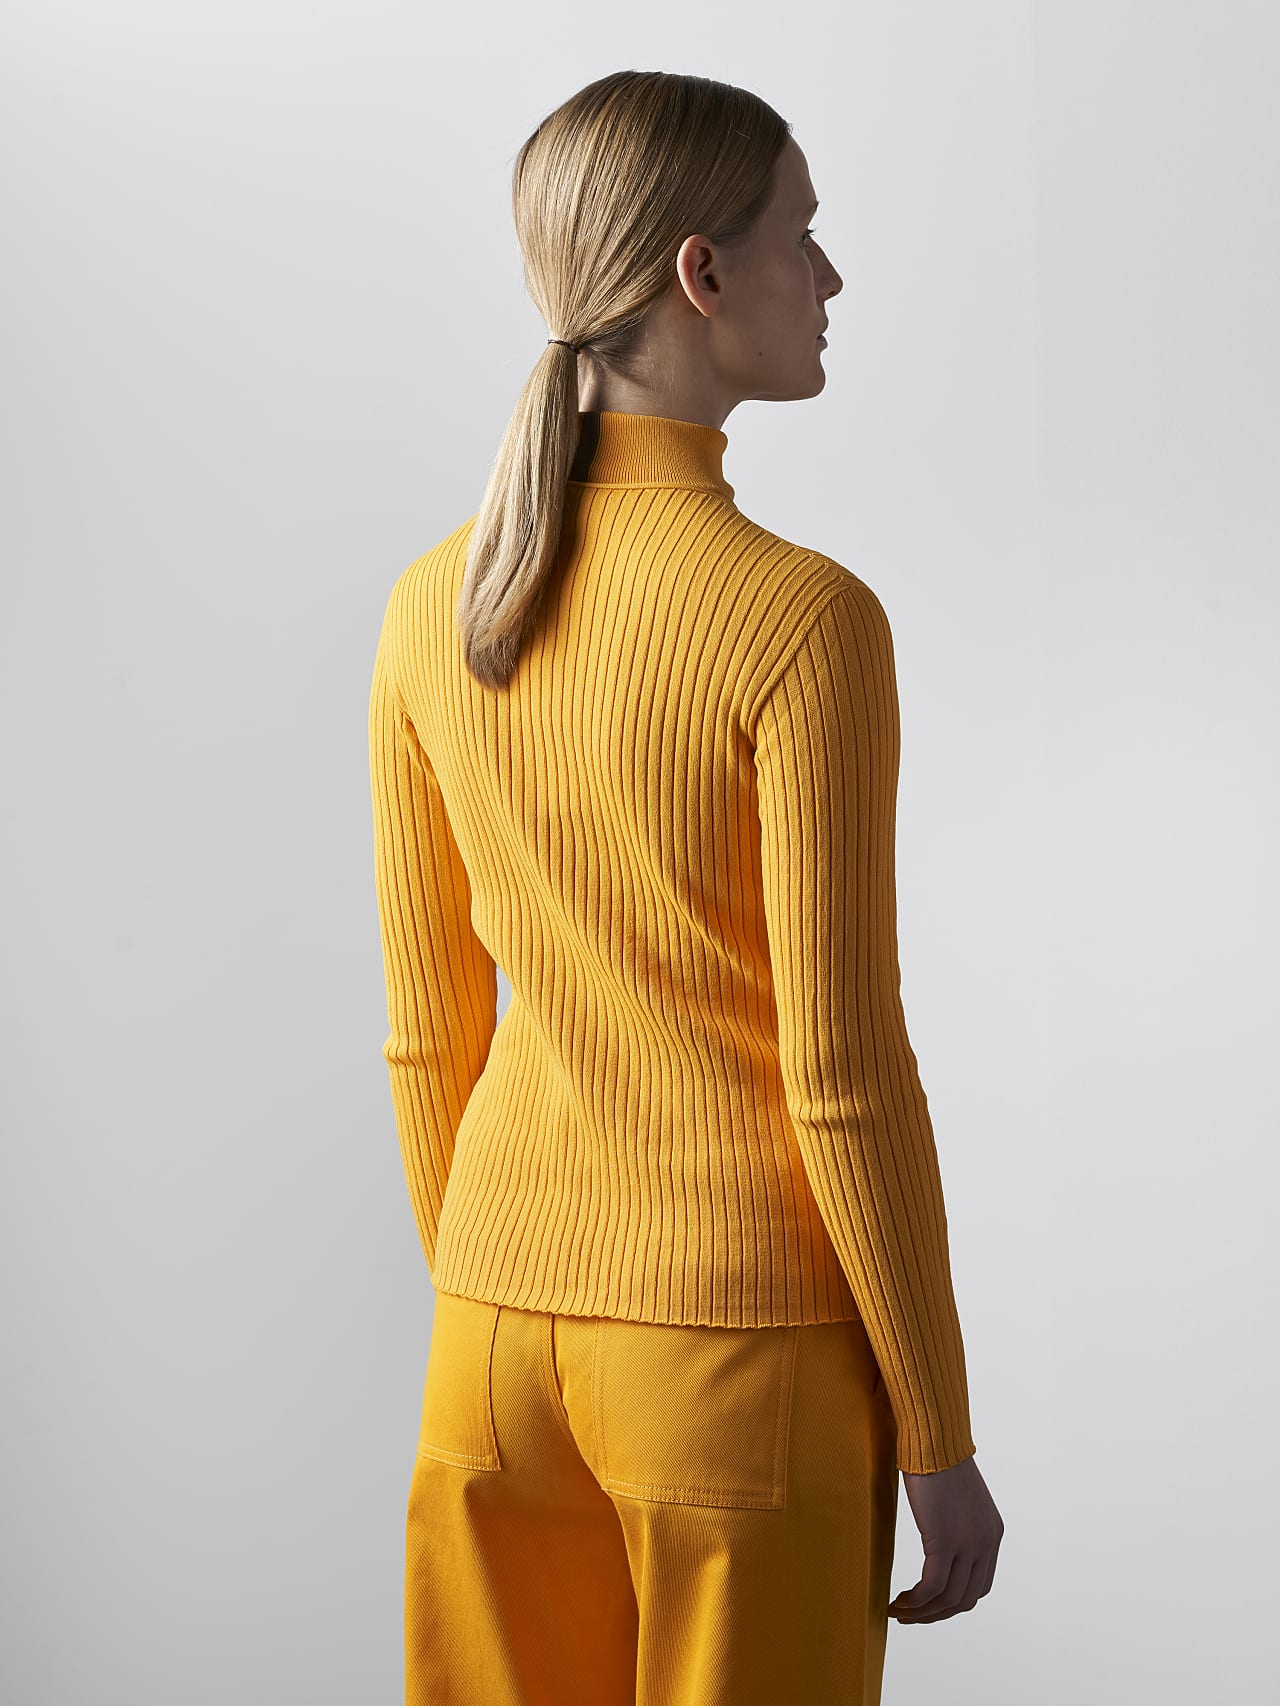 FAXEE V1.Y5.02 Seamless 3D Knit Mock-Neck Jumper yellow Front Main Alpha Tauri